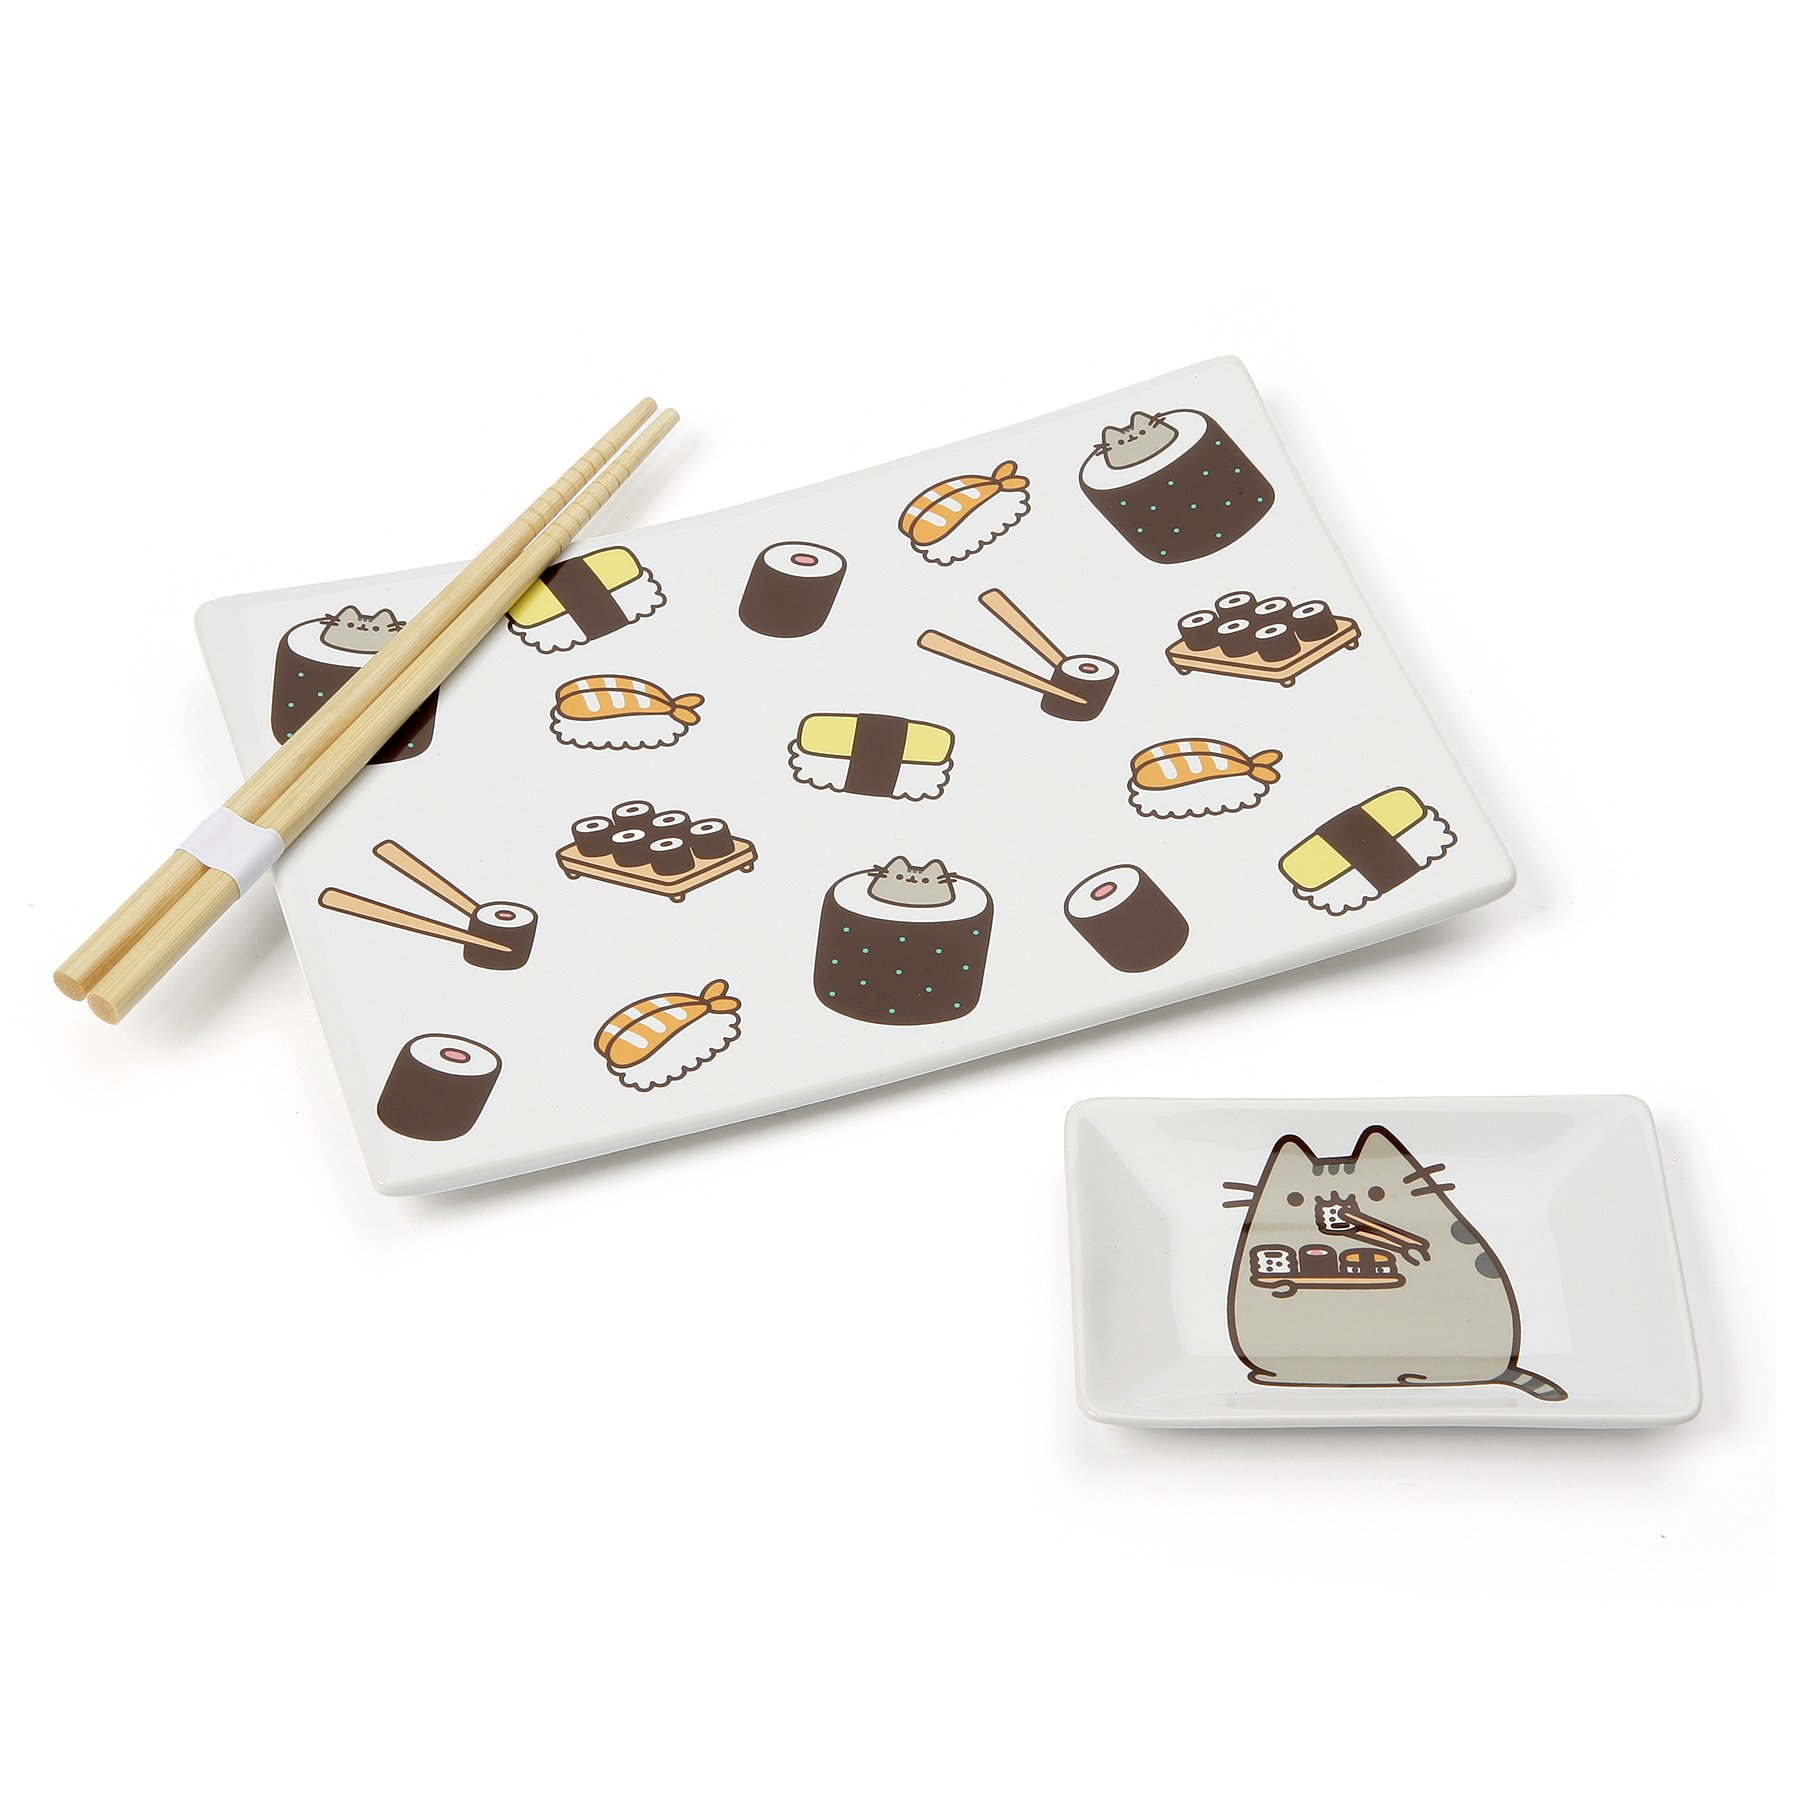 Pusheen by Our Name is Mud Stoneware Sushi Tray and Soy Dish with Chopsticks, 3 Pieces, White